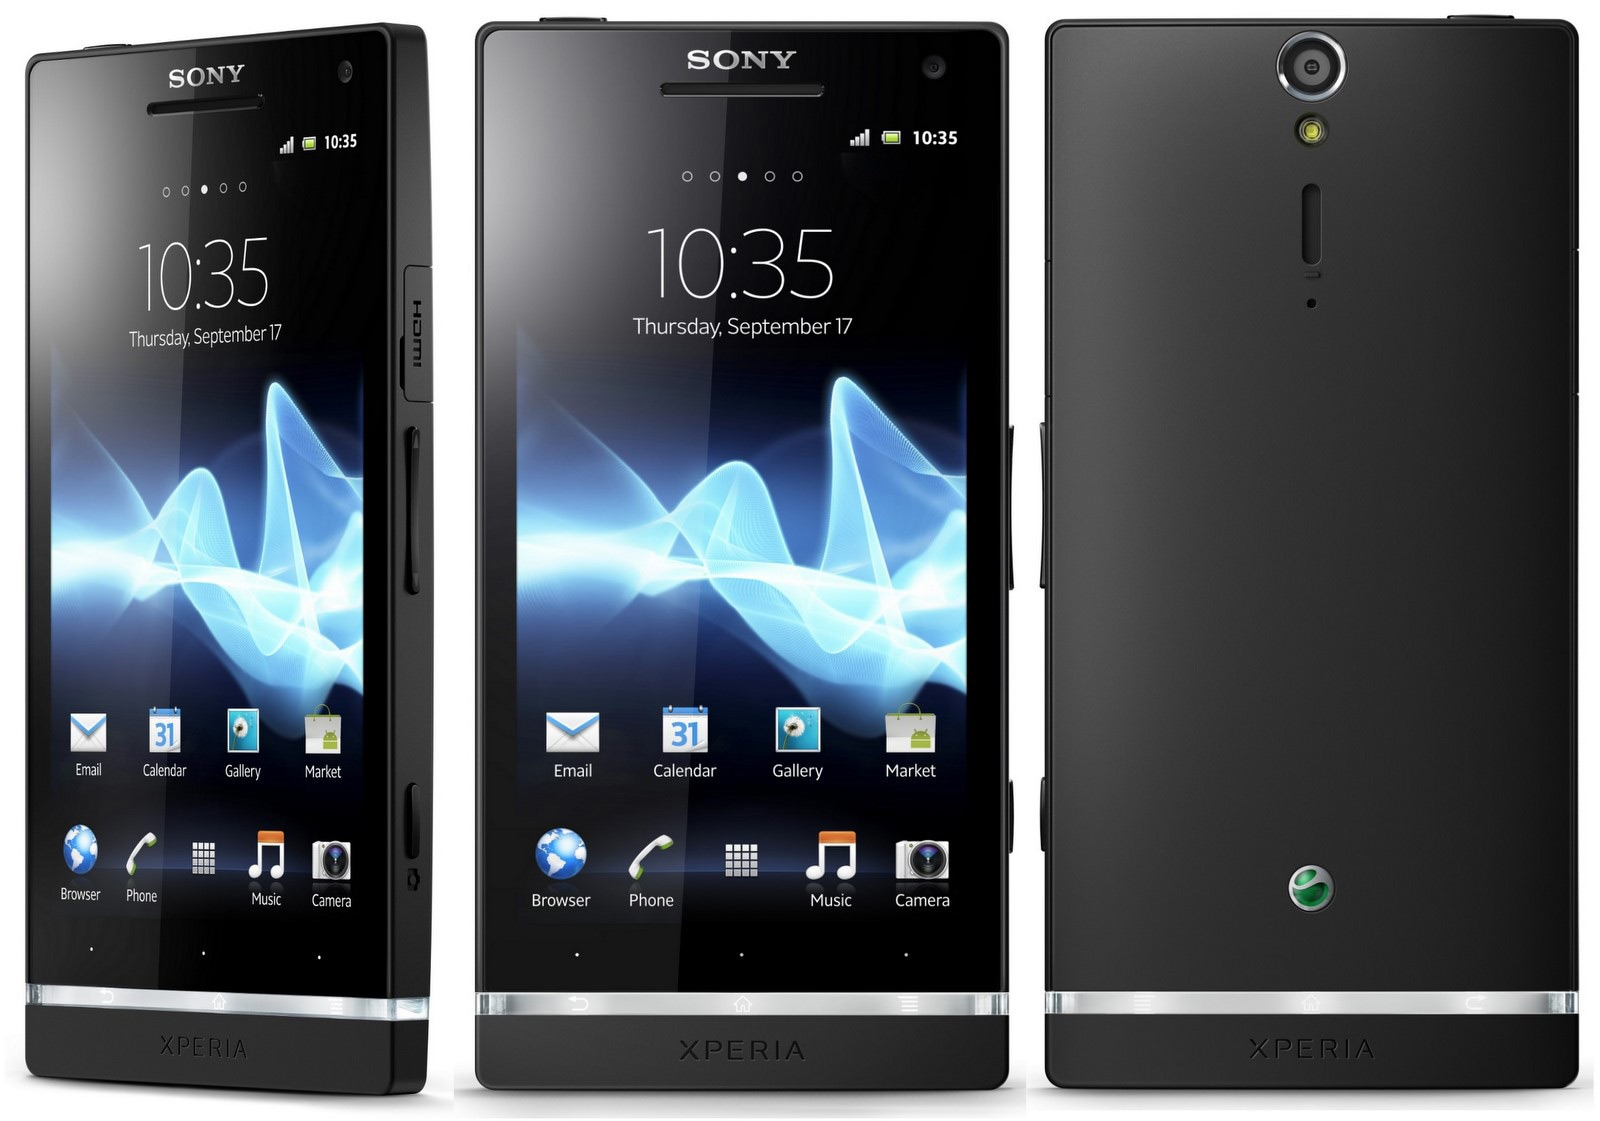 sony xperia s manual user guide manual that easy to read u2022 rh sibere co Sony Xperia Acro S sony xperia acro s user manual